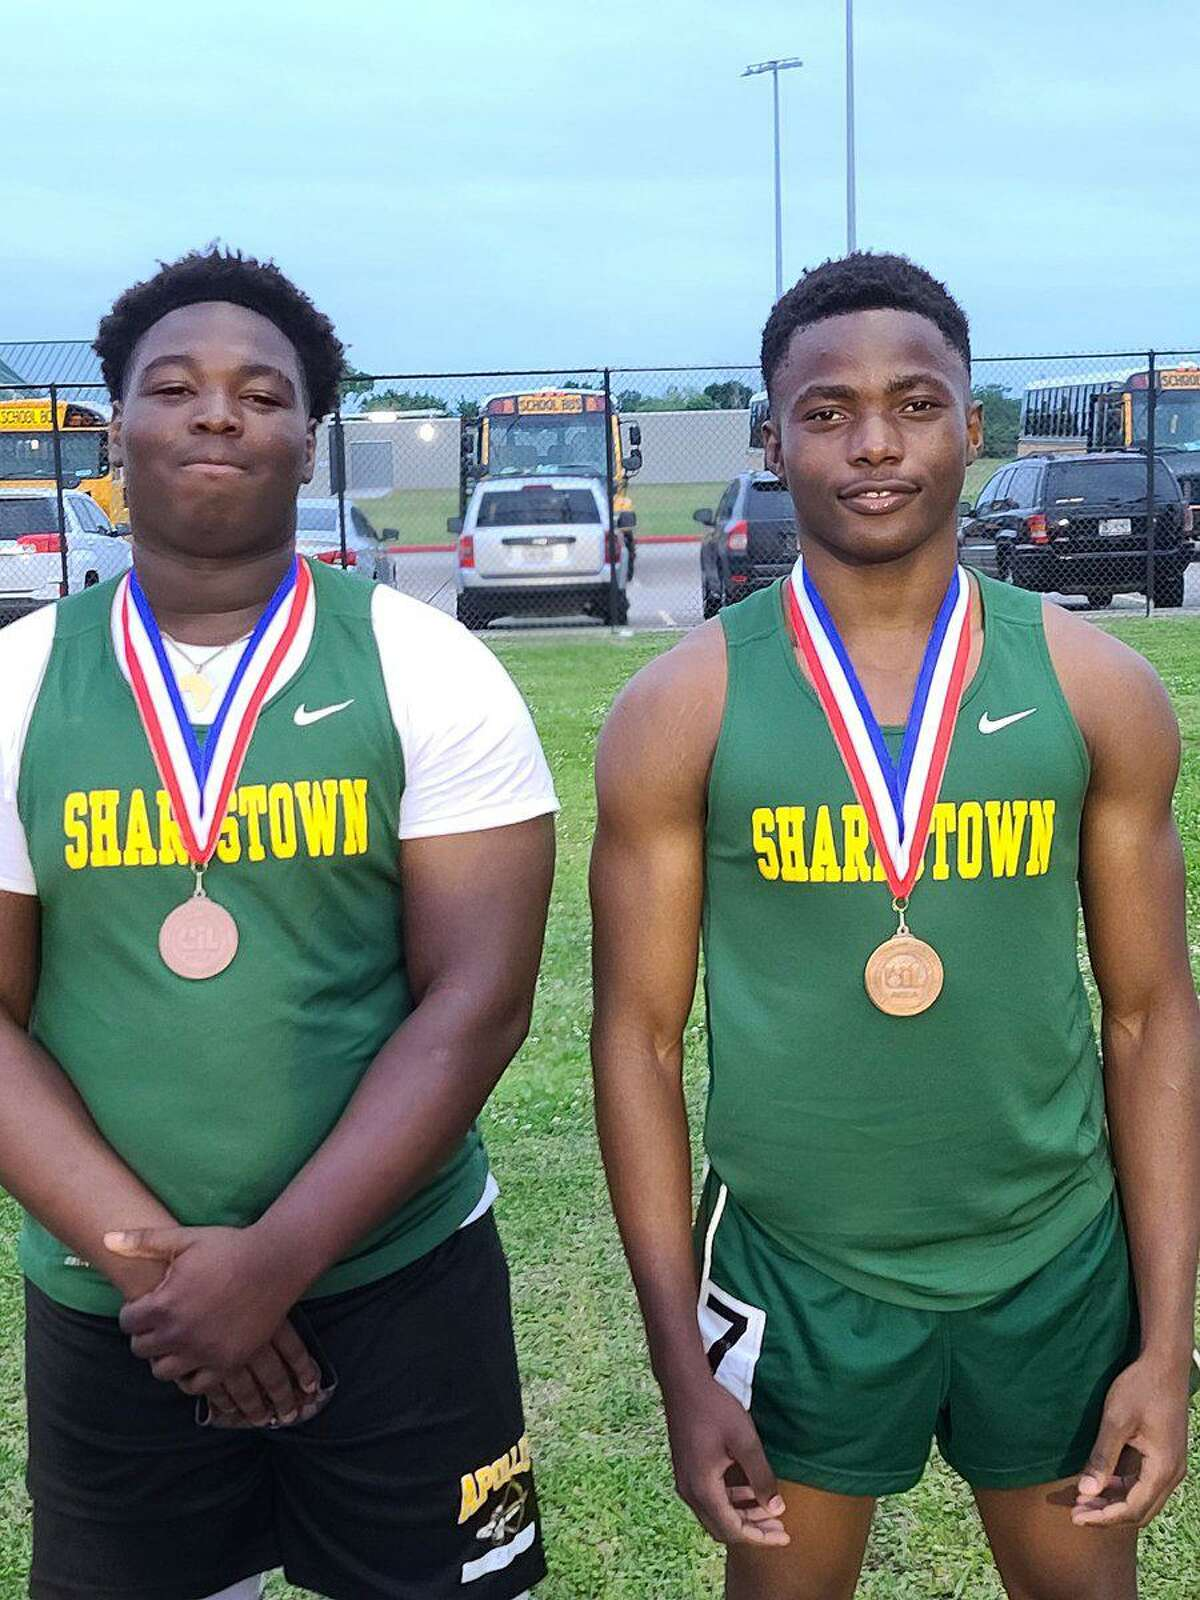 Sharpstown qualified two athletes for the Region III-5A championships, with Kashala Kapyamba advancing in the 400-meter dash andFechal Kouldiati advancing in the shot put.